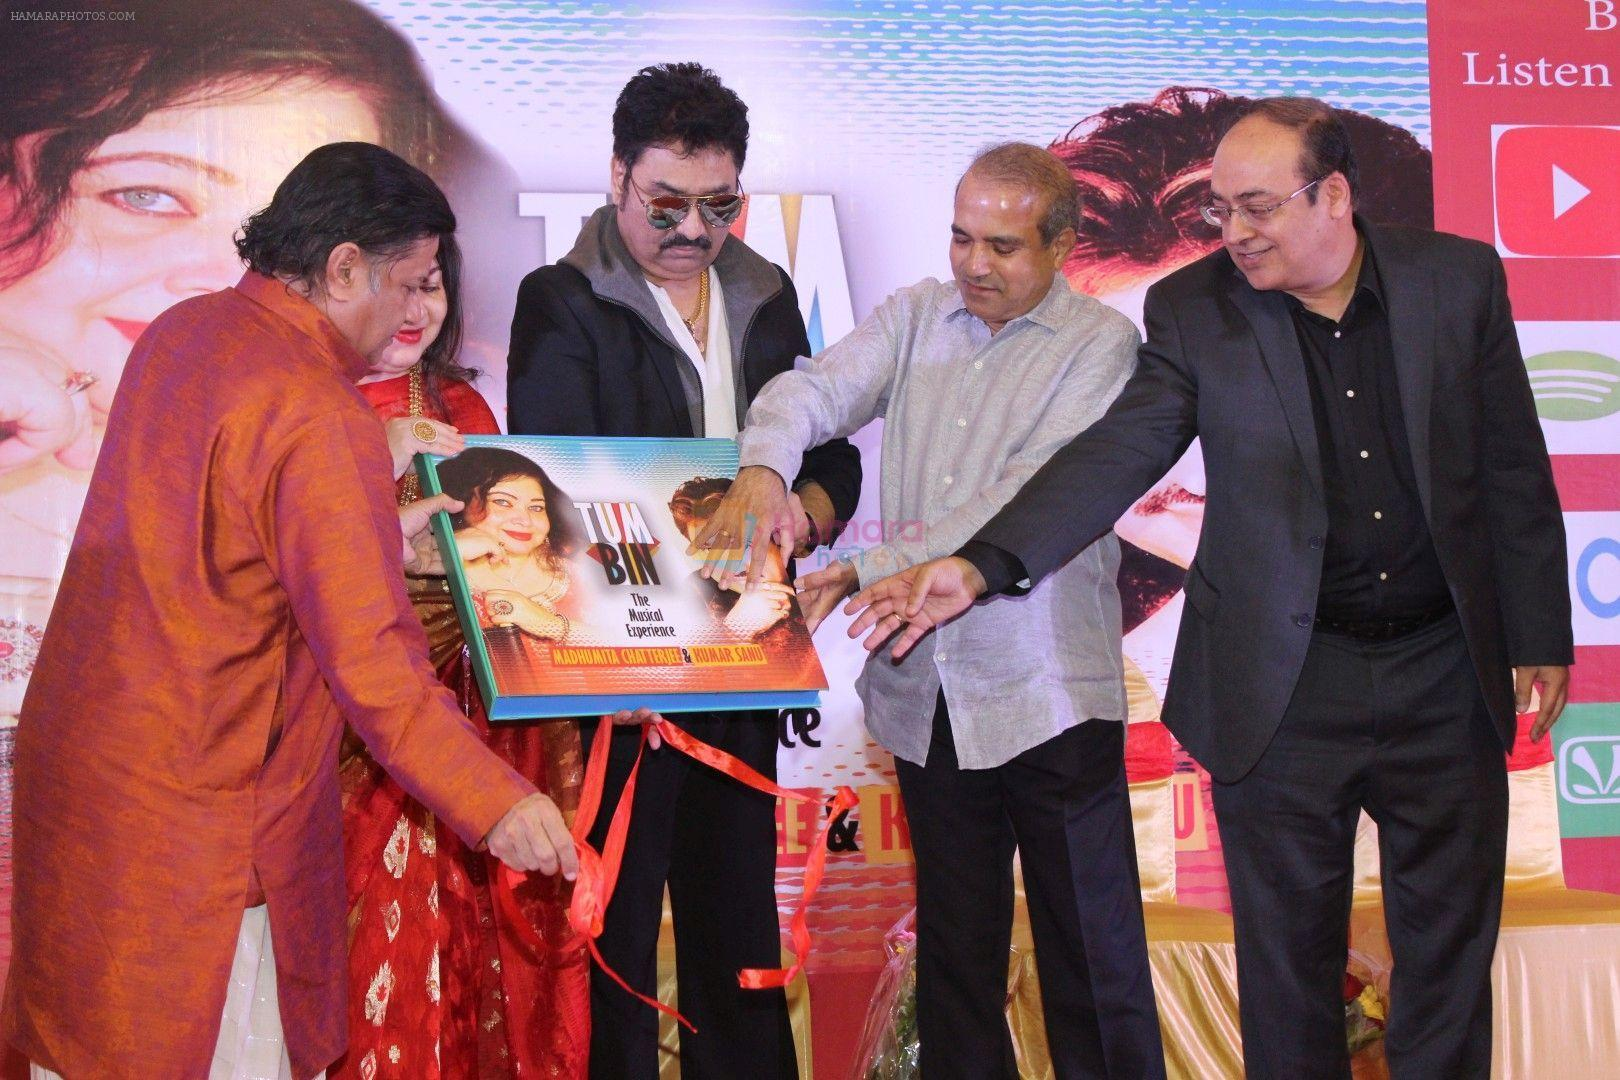 Anup Jalota, Suresh Wadkar, Kumar Sanu at the launch of New Album Tum Bin on 22nd Dec 2017